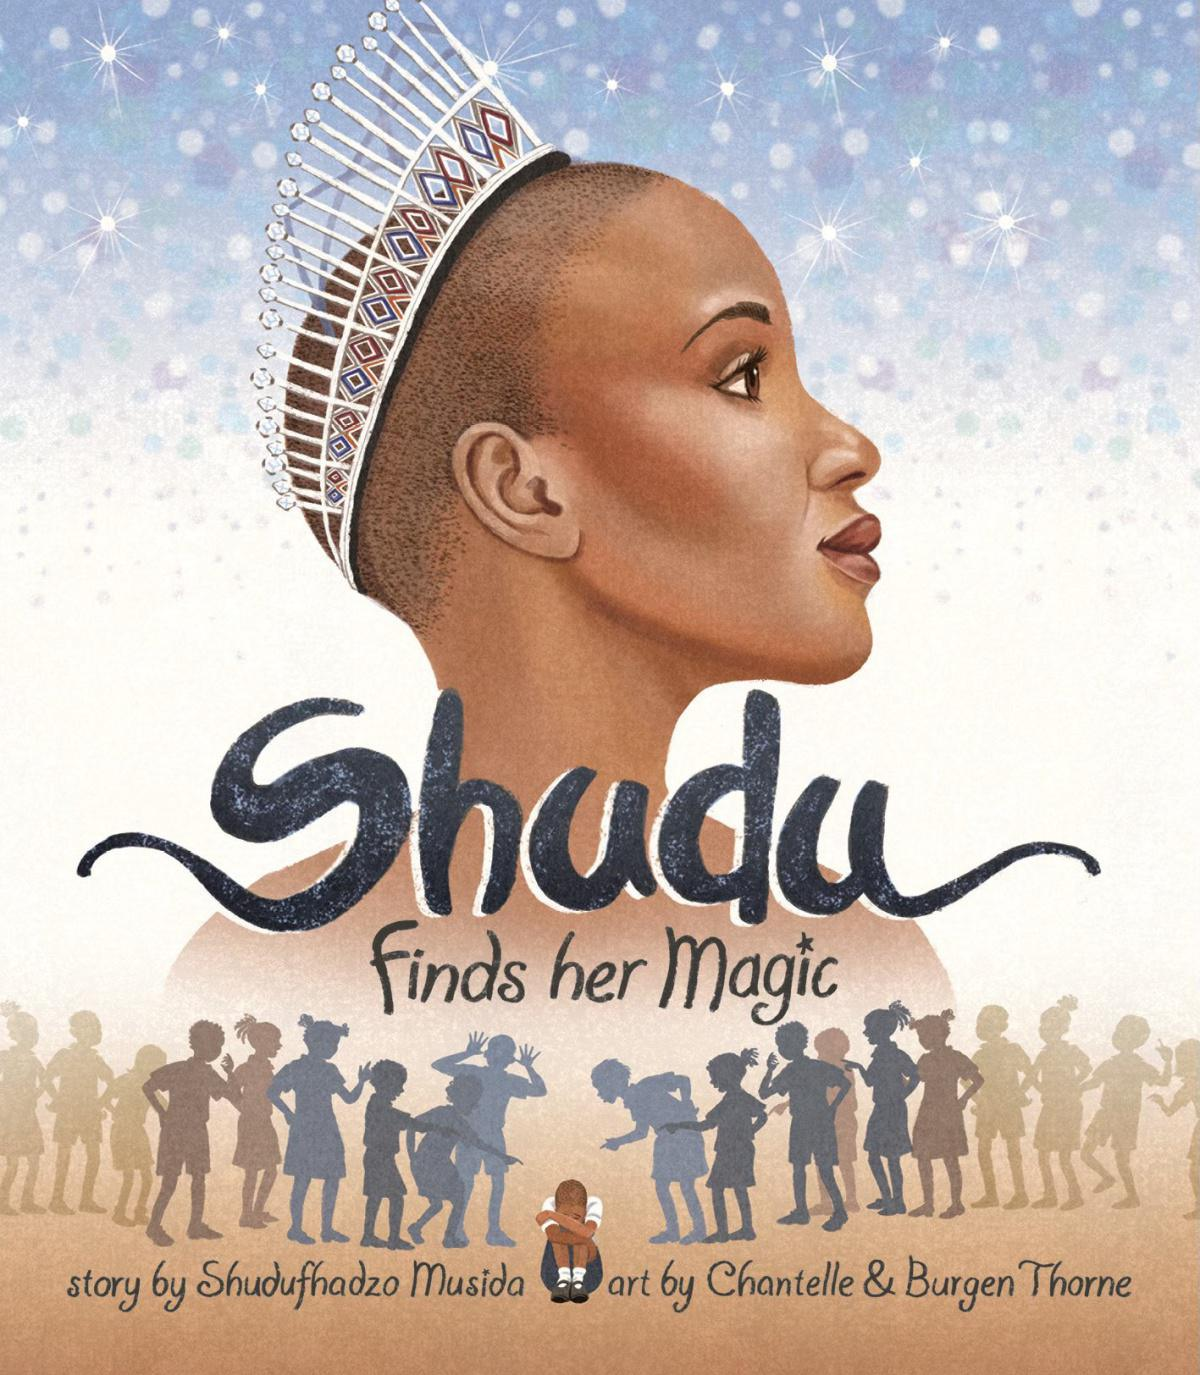 Miss SA launches children's book to help fight bullying